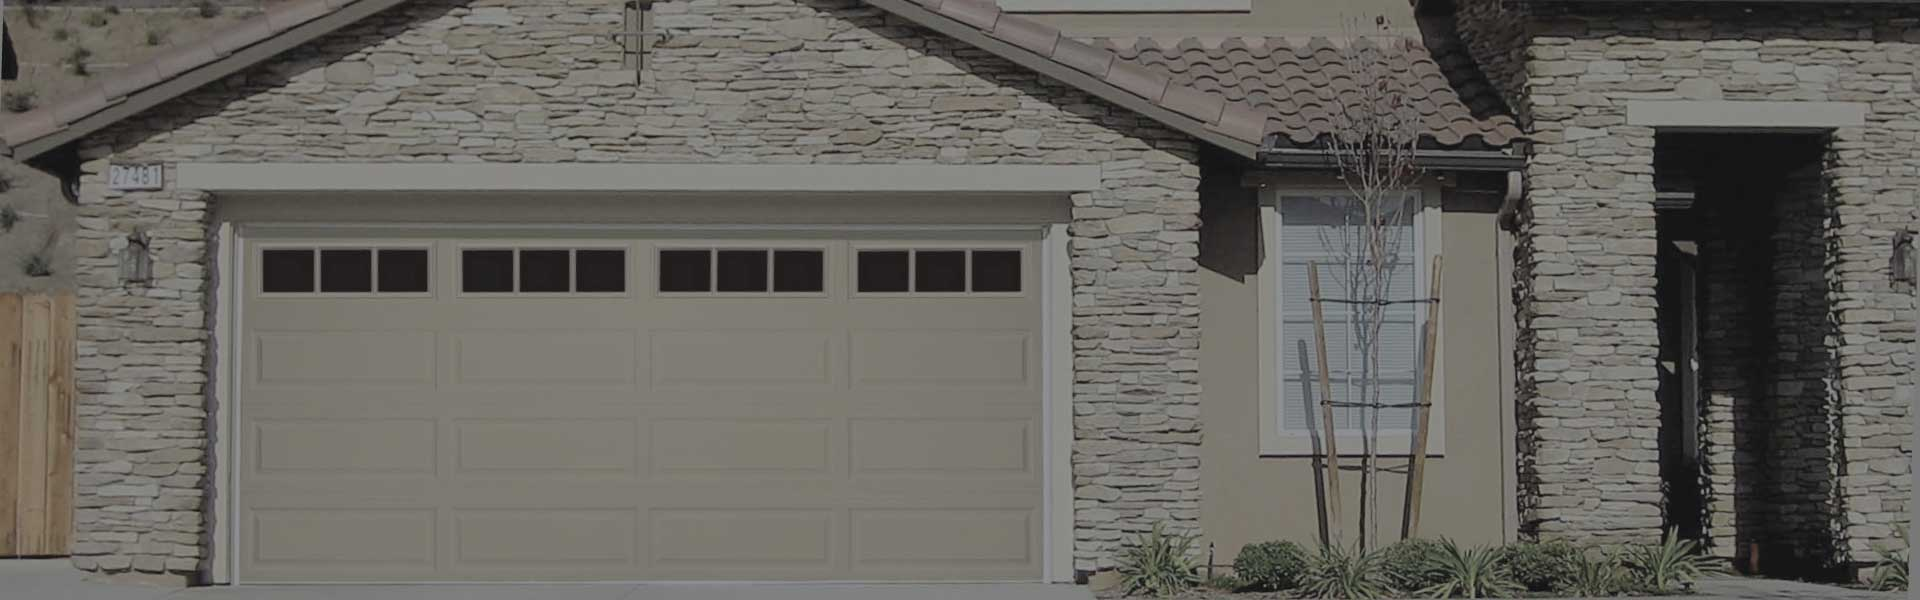 garage door repair houston 1 in garage door service